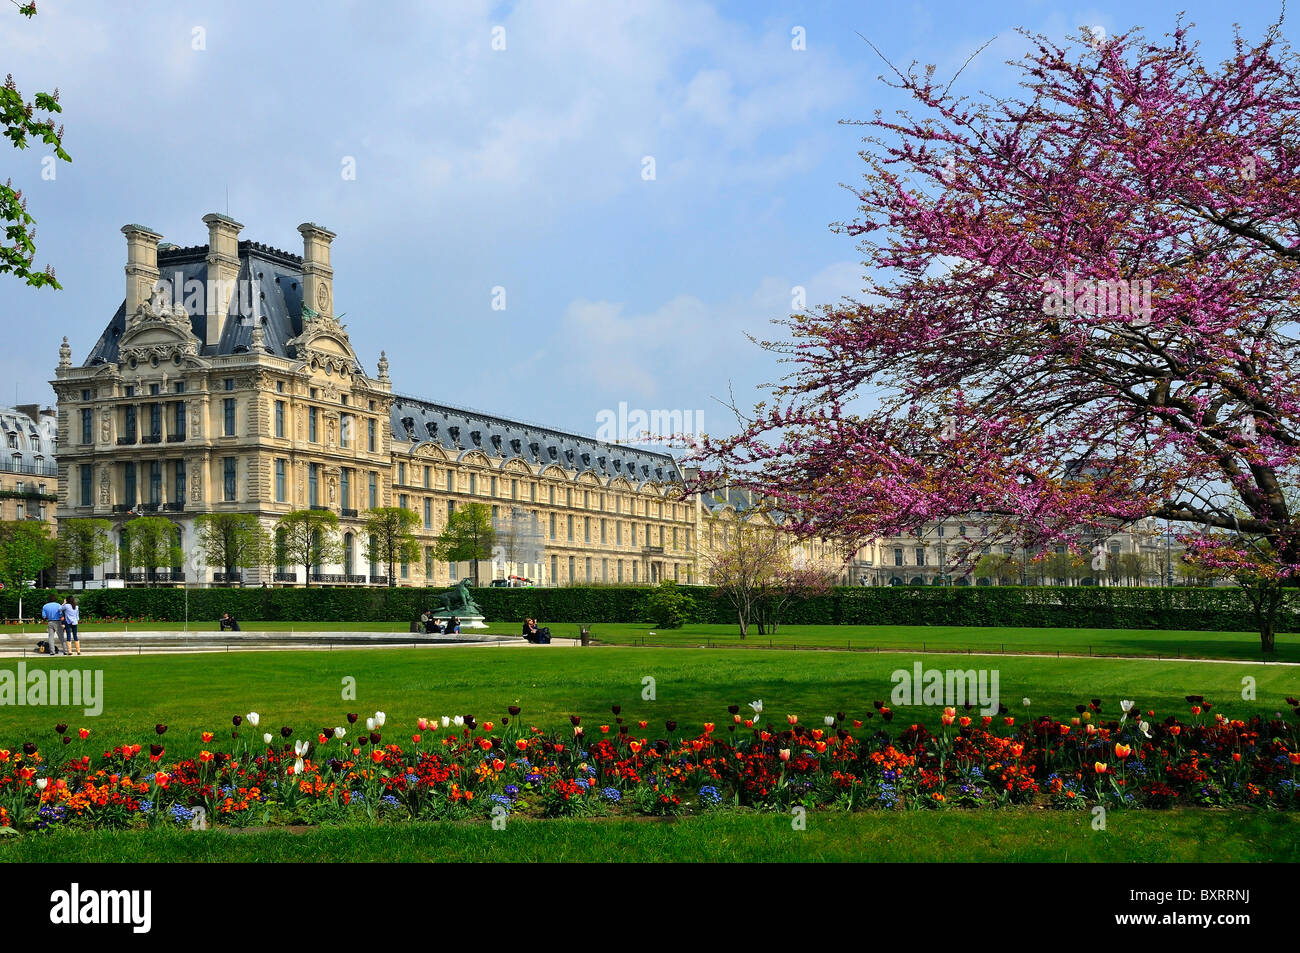 jardin des tuileries public garden rive droite paris stock photo royalty free image 33714958. Black Bedroom Furniture Sets. Home Design Ideas